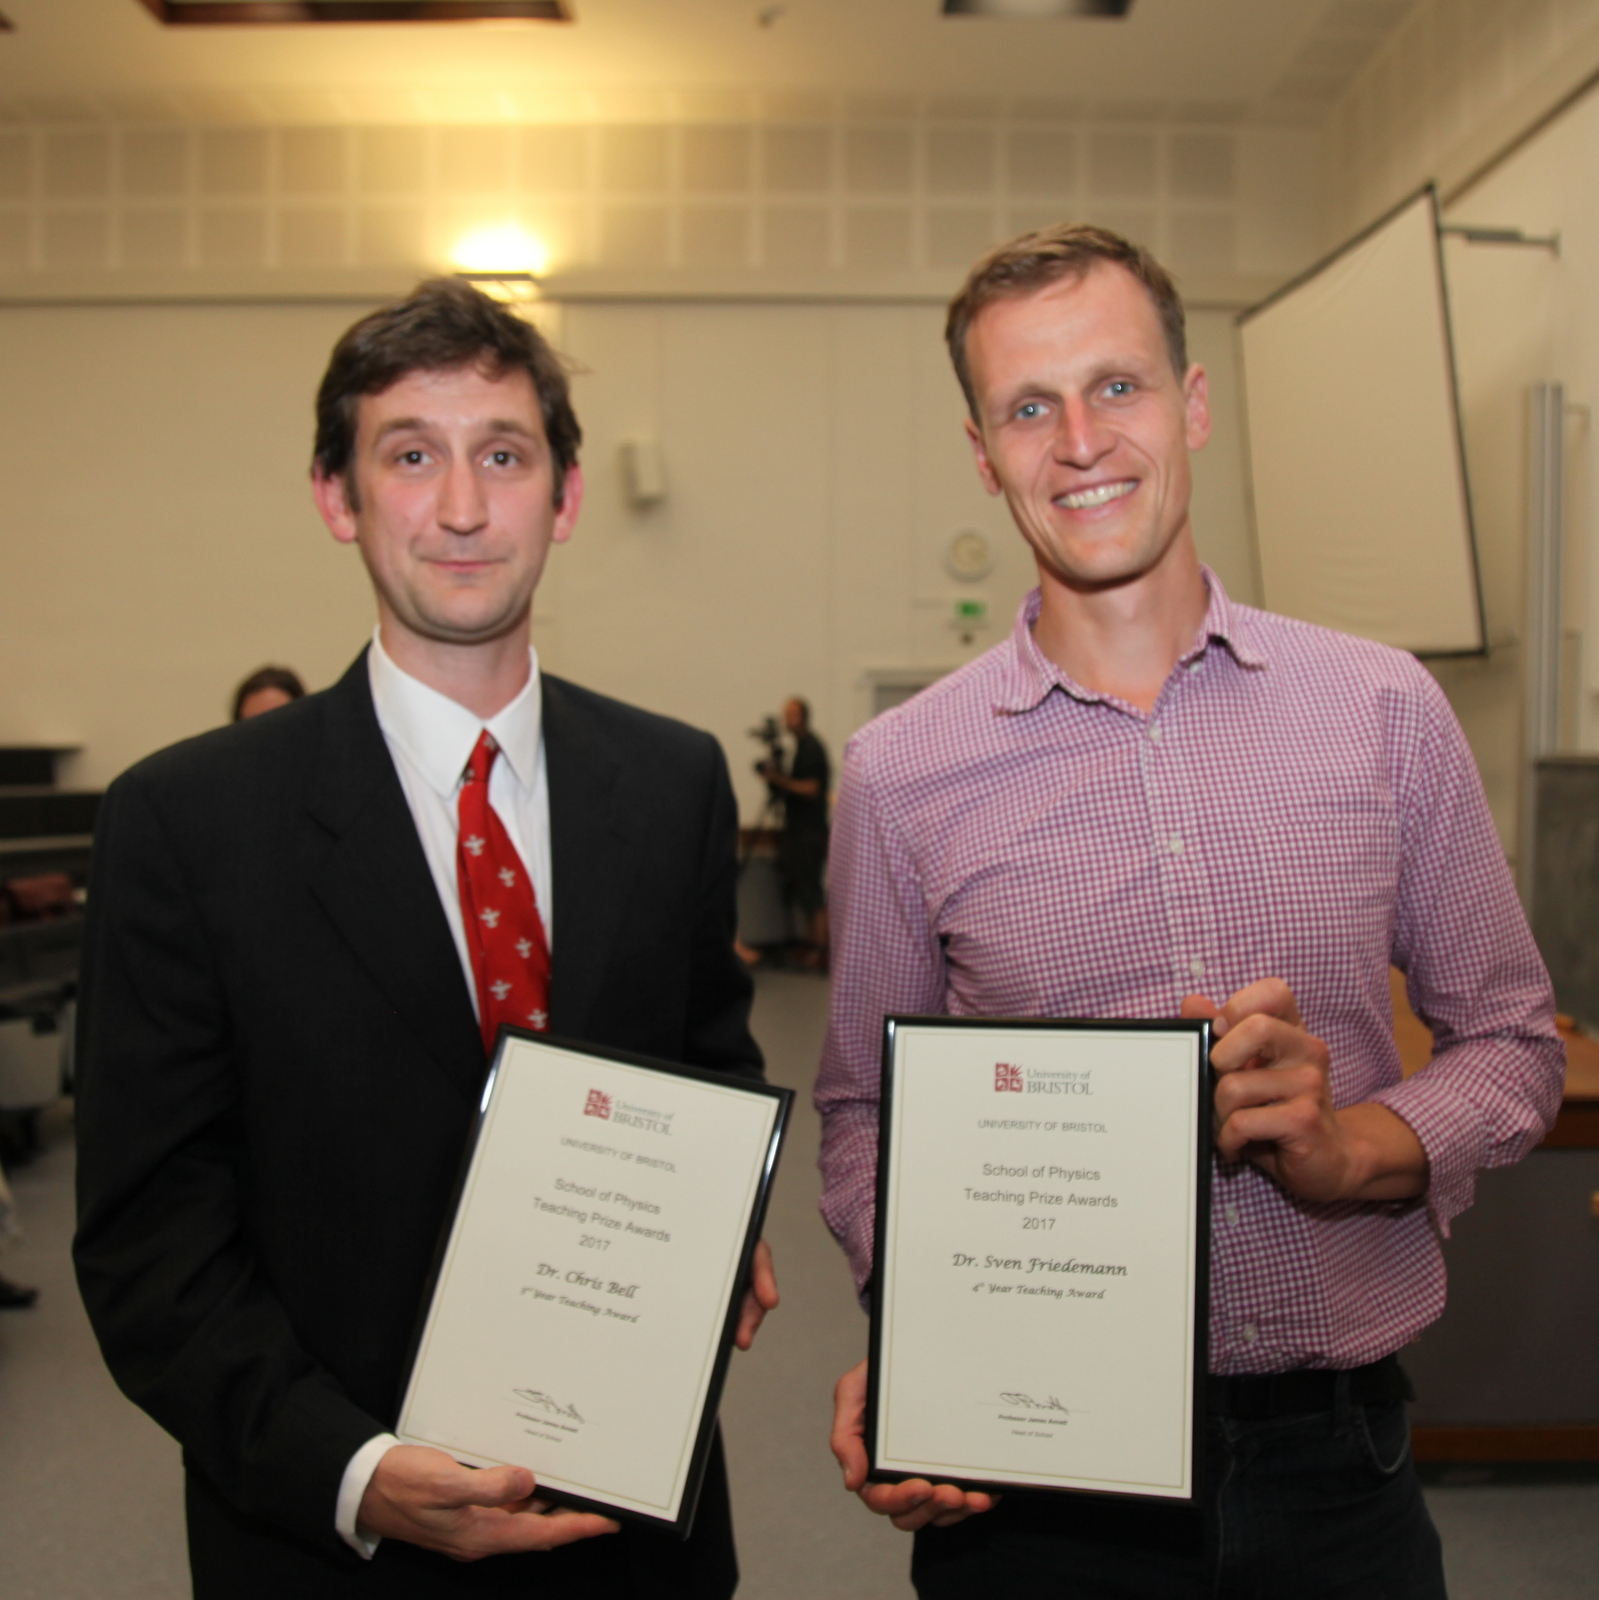 Teaching Prize for Chris Bell and Sven Friedemann